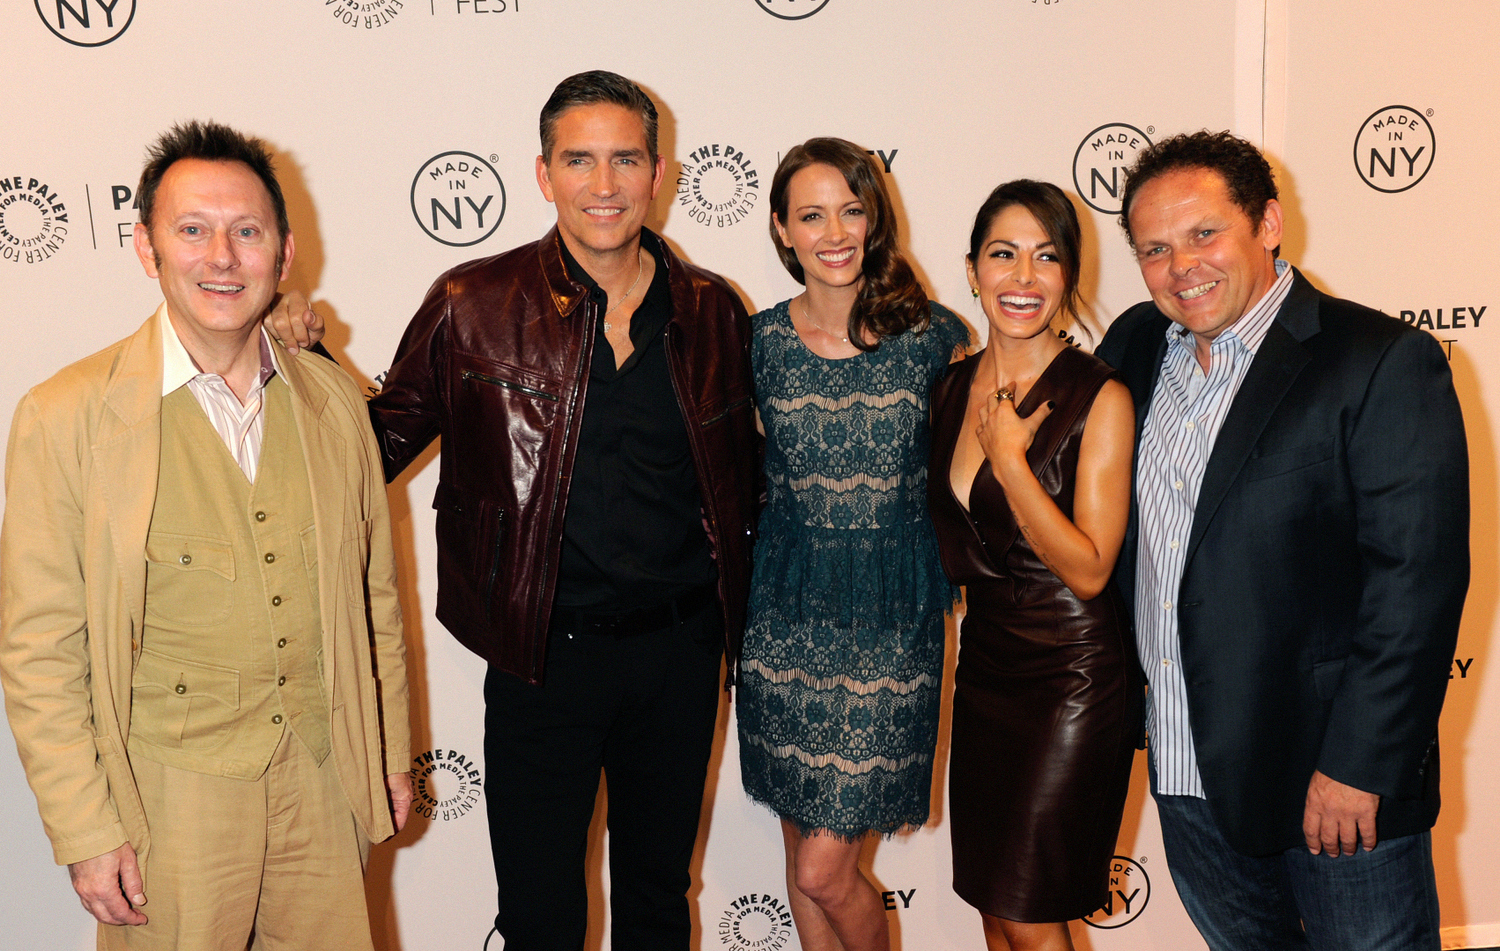 Person of Interest at Paley Fest